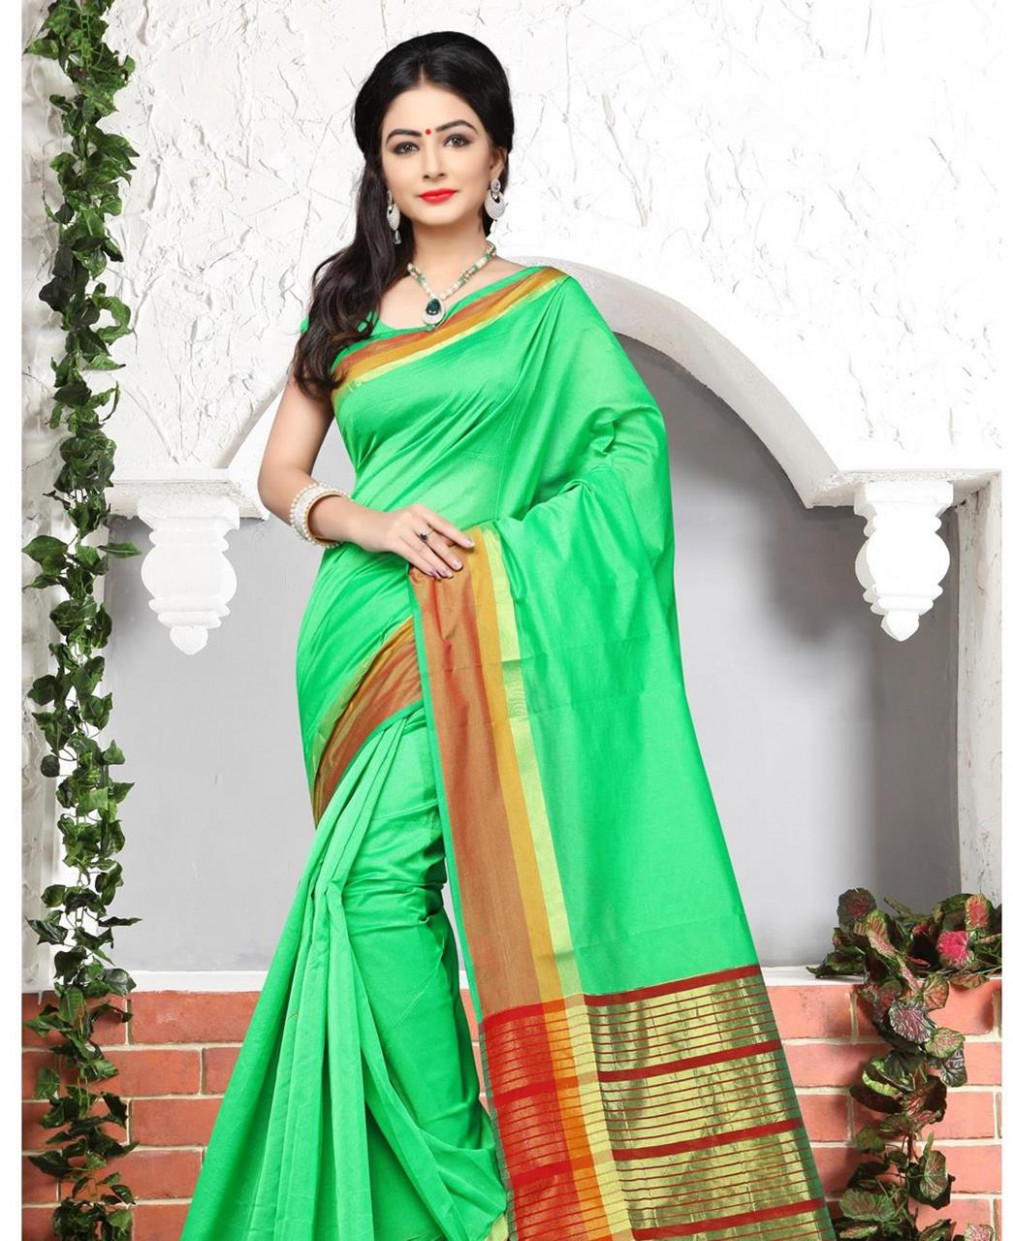 Buy Grand Green Casual Saree [105314] at 17.55 (AUD)